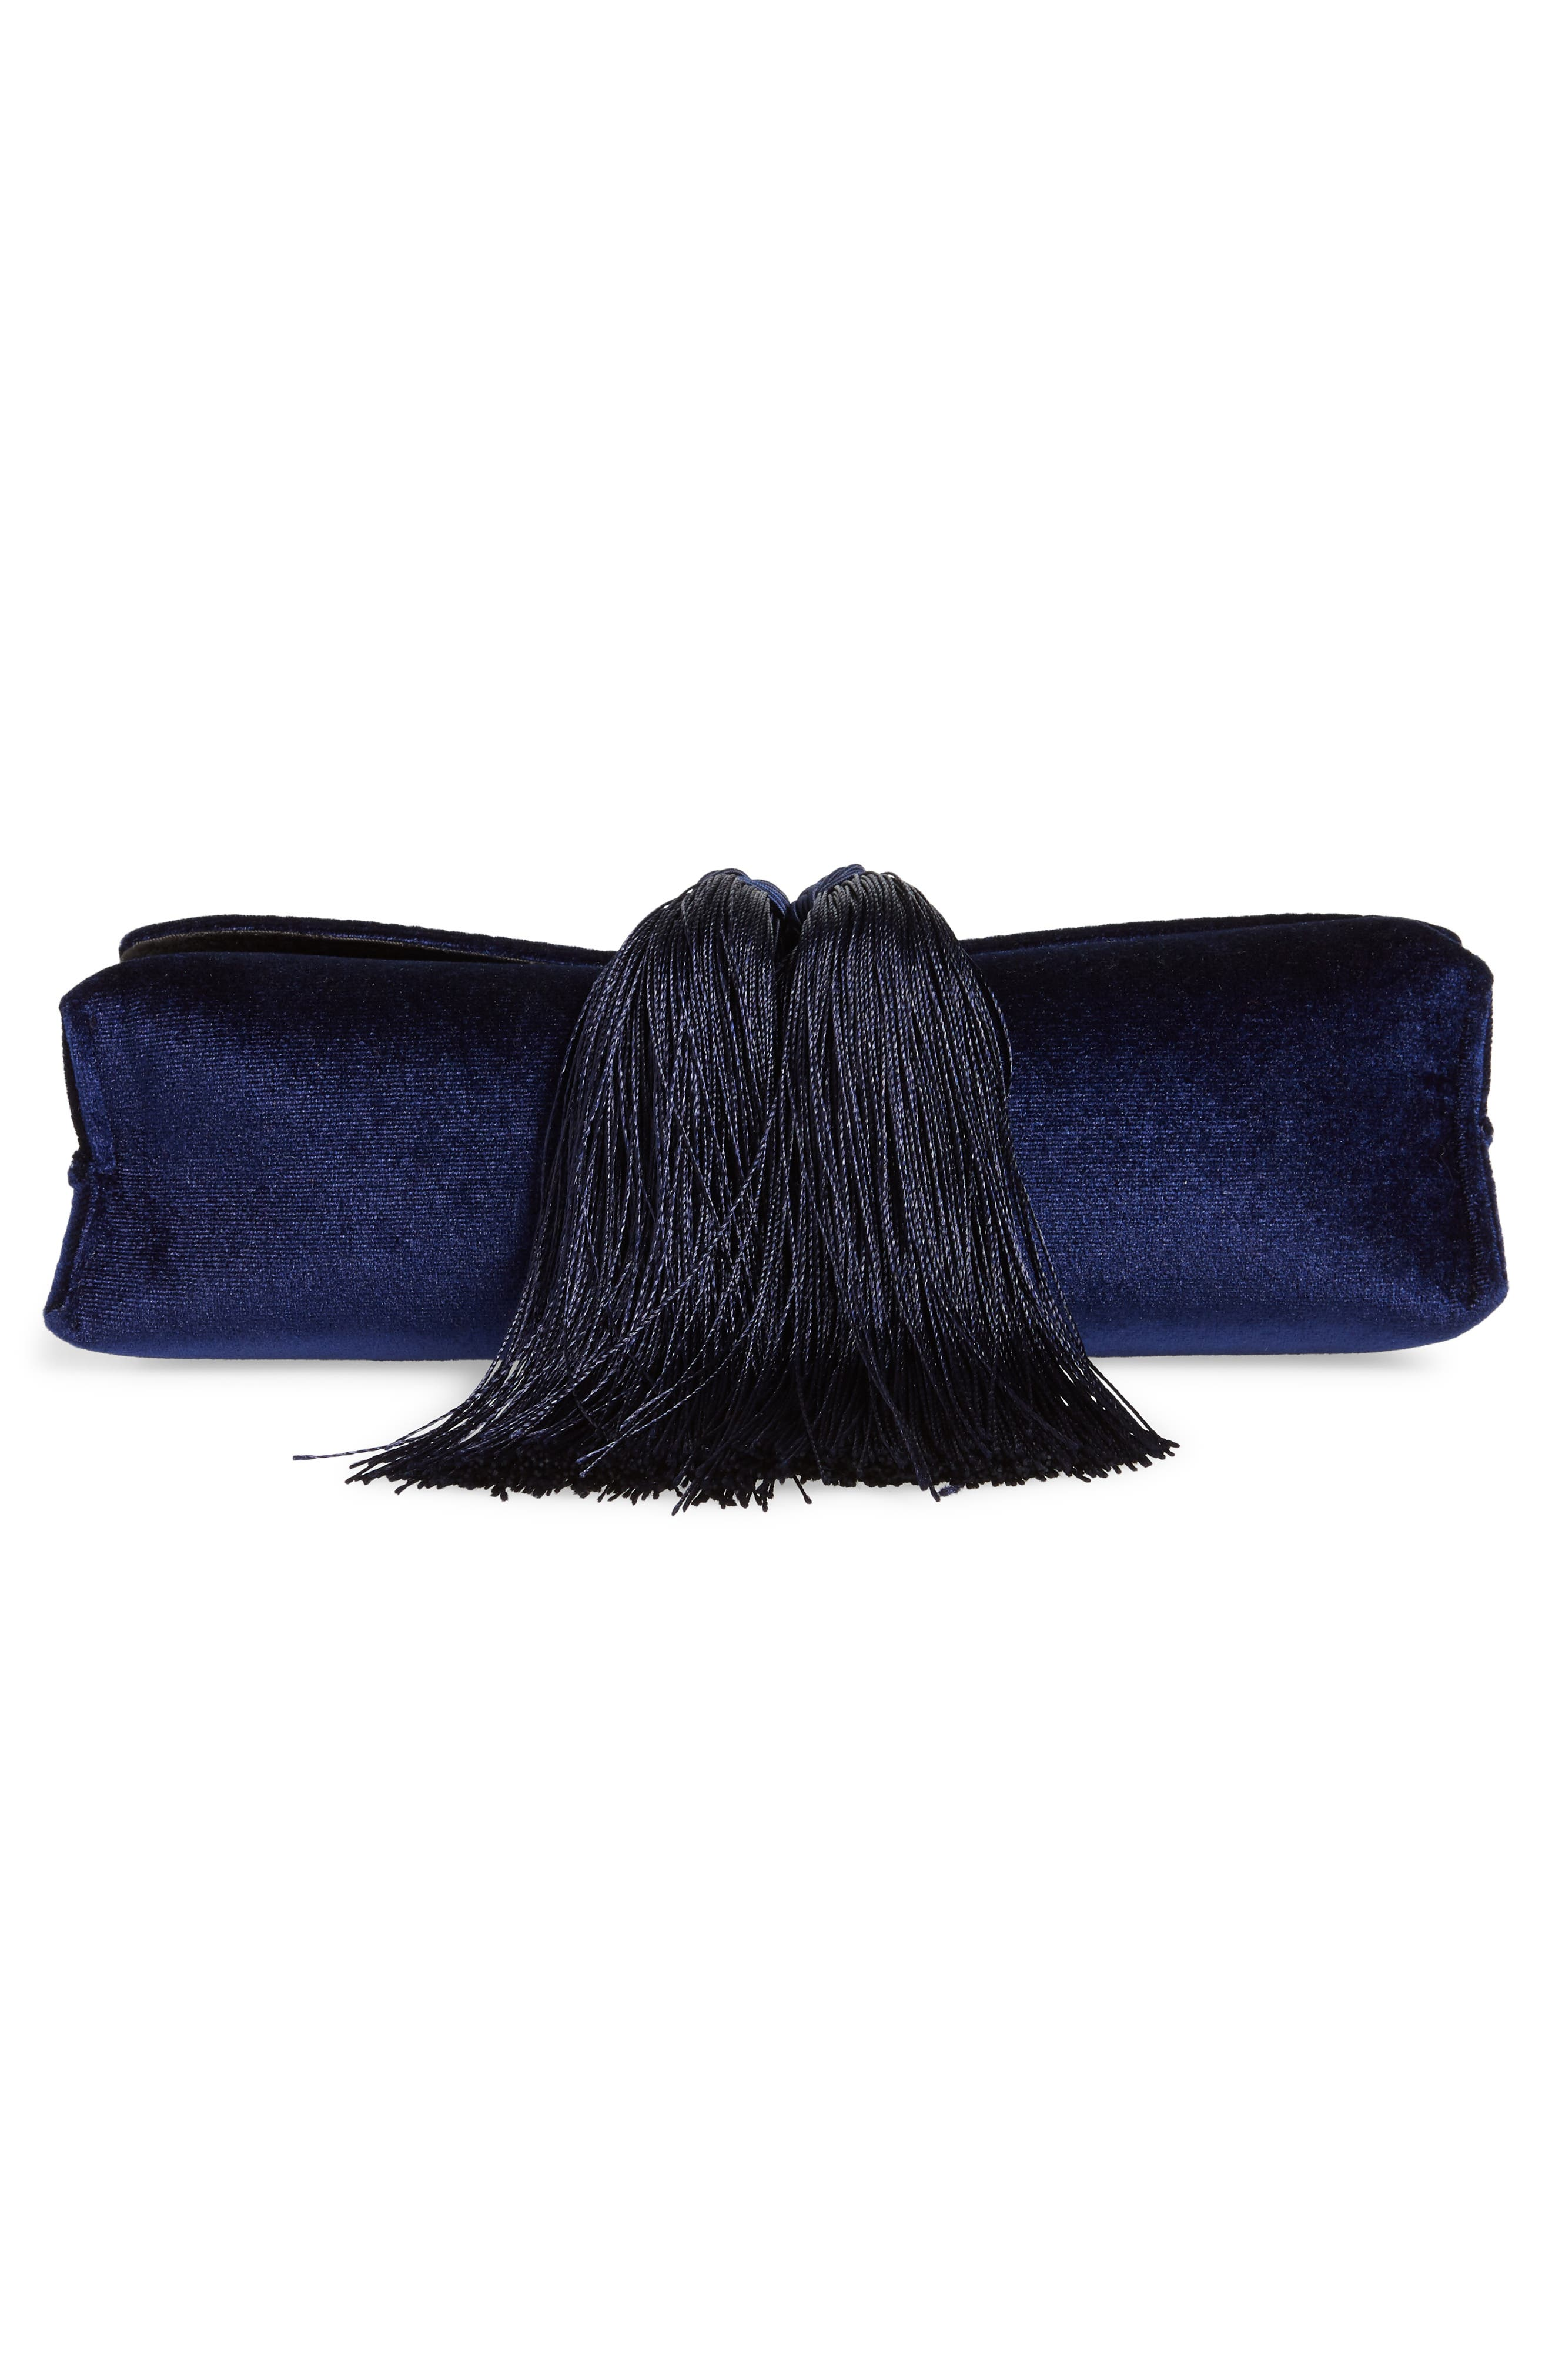 Kasia Beaded Dragonfly Velvet Clutch,                             Alternate thumbnail 6, color,                             DARK BLUE